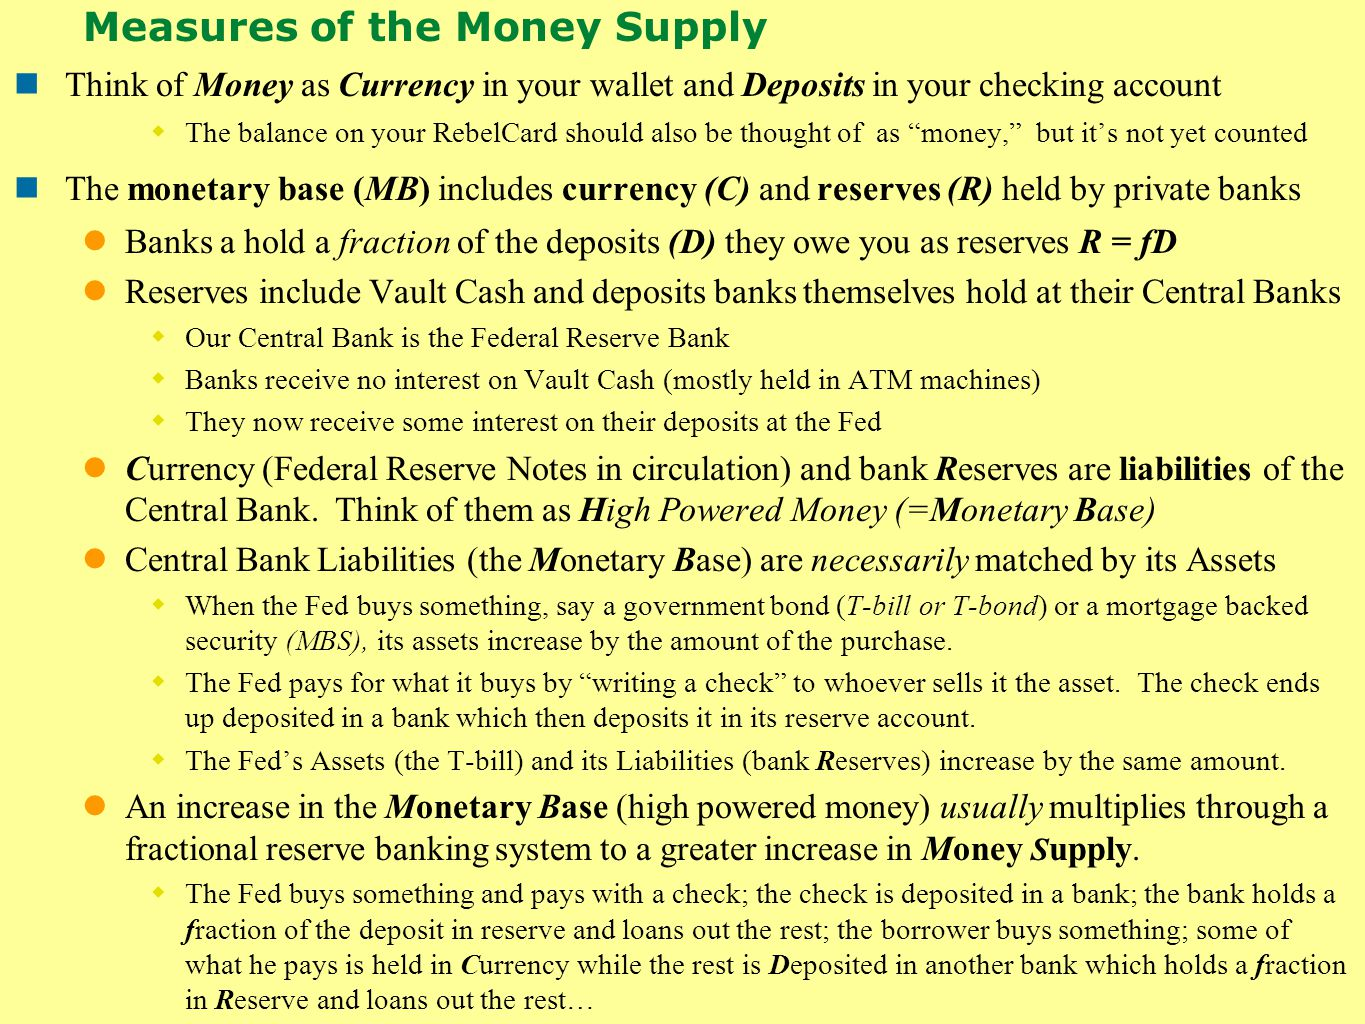 Measures of the Money Supply Think of Money as Currency in your wallet and Deposits in your checking account  The balance on your RebelCard should also be thought of as money, but it's not yet counted The monetary base (MB) includes currency (C) and reserves (R) held by private banks Banks a hold a fraction of the deposits (D) they owe you as reserves R = fD Reserves include Vault Cash and deposits banks themselves hold at their Central Banks  Our Central Bank is the Federal Reserve Bank  Banks receive no interest on Vault Cash (mostly held in ATM machines)  They now receive some interest on their deposits at the Fed Currency (Federal Reserve Notes in circulation) and bank Reserves are liabilities of the Central Bank.